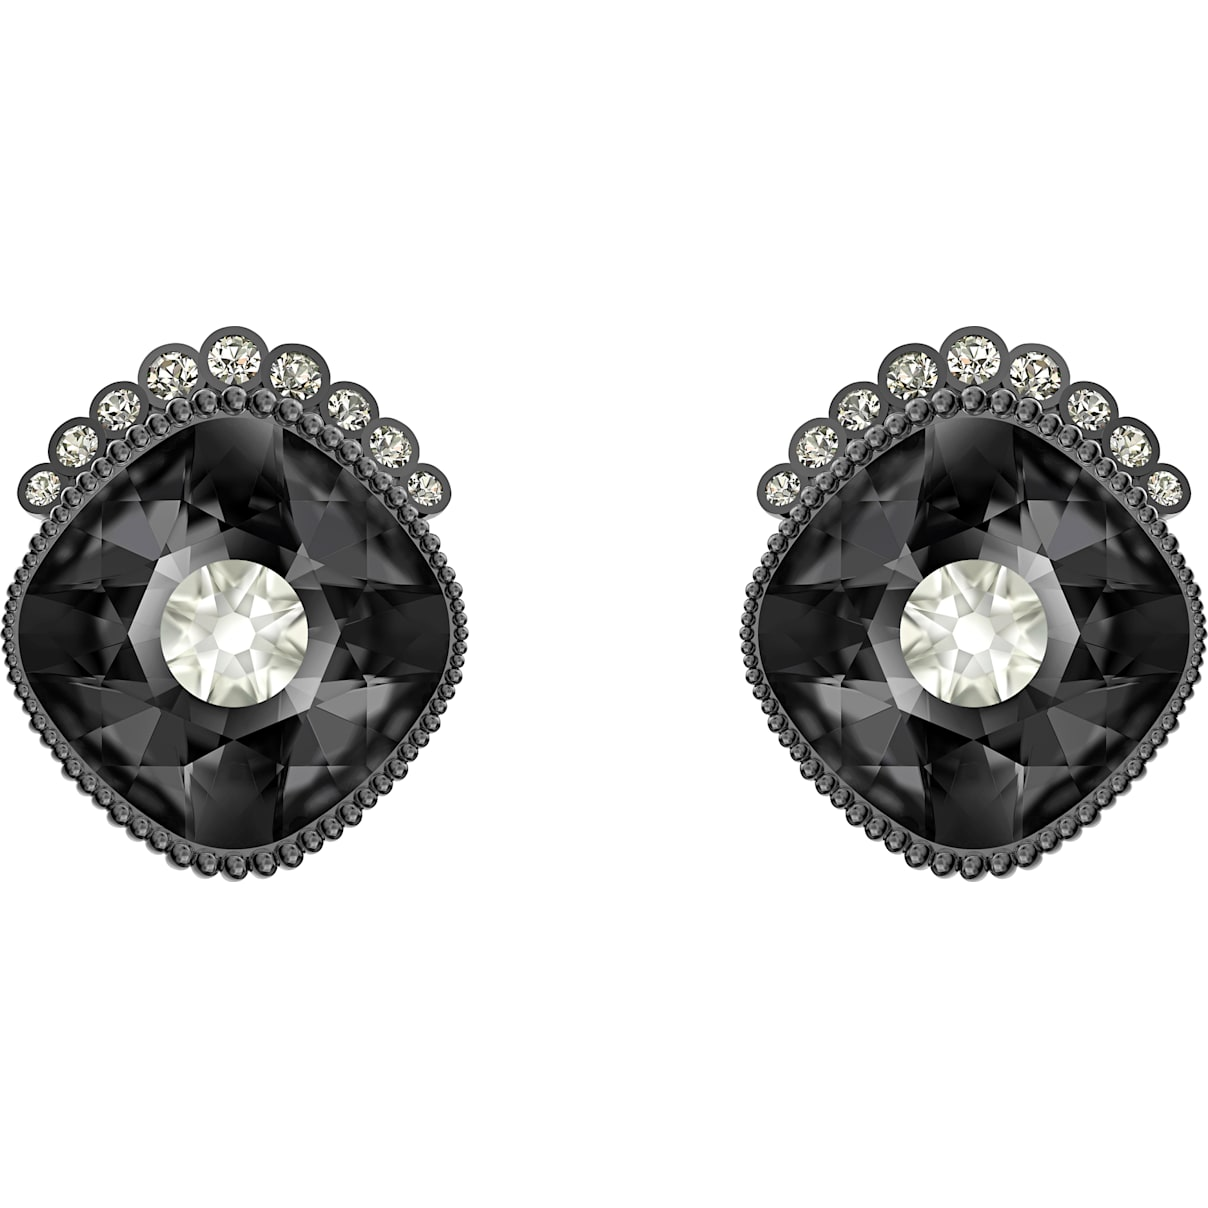 Swarovski Black Baroque Stud Pierced Earrings, Dark gray, Ruthenium plated